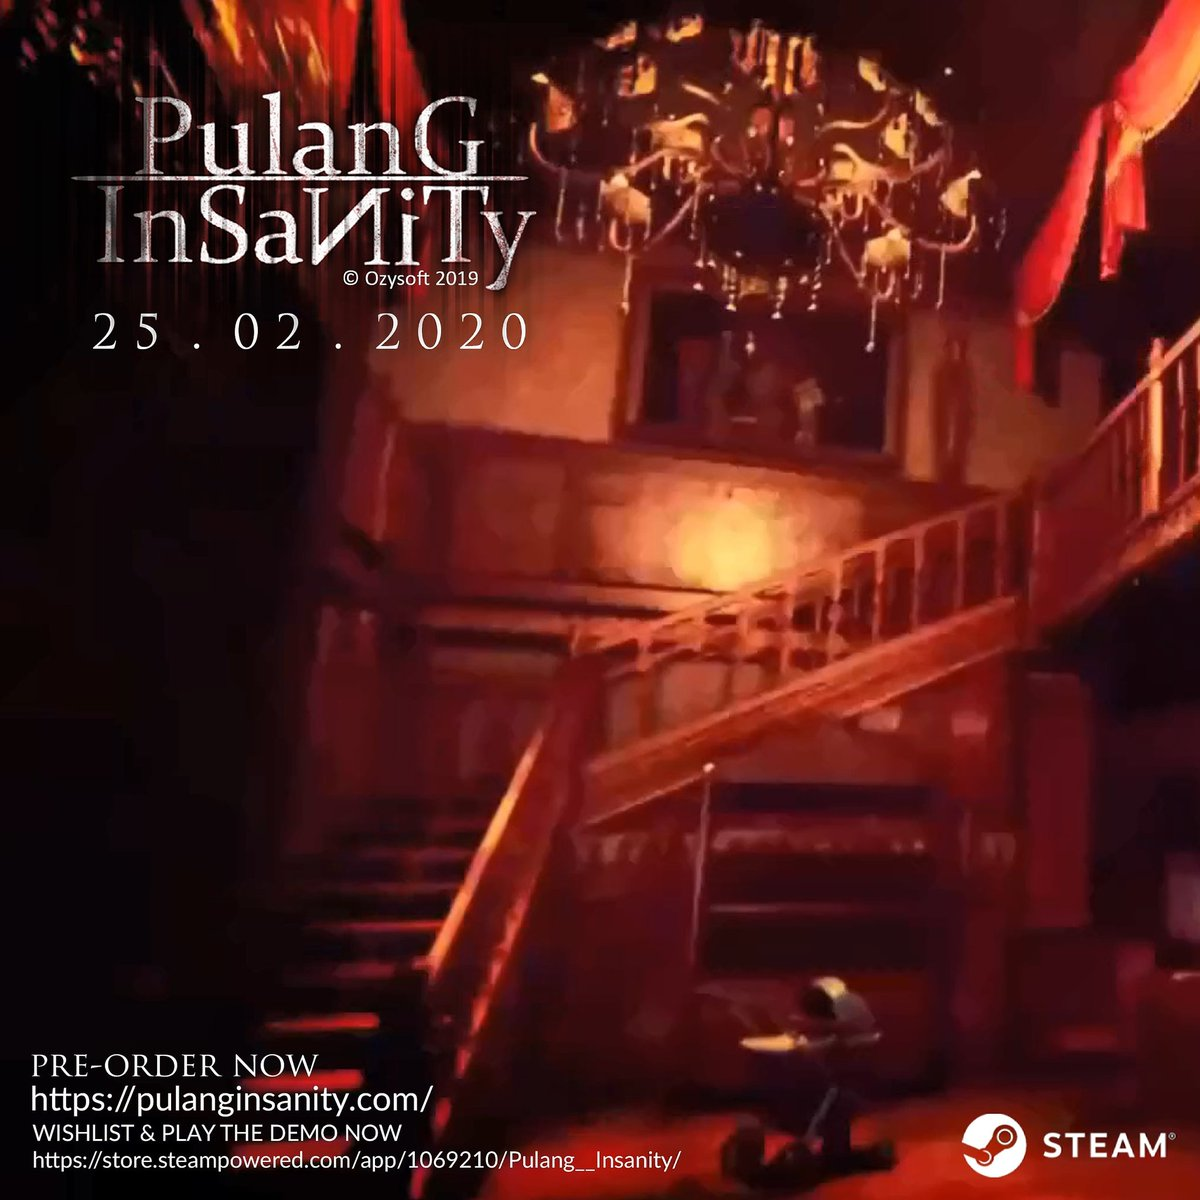 WISHLIST & PLAY THE DEMO NOW https://store.steampowered.com/app/1069210/Pulang__Insanity/ …  Website : http://pulanginsanity.com/   #EnterInsanity #ComingSoon #Games #Steam #Indonesia #horror #SurvivalHorror #PsychologicalHorror #pulanginsanity #NewDemoUpdatepic.twitter.com/d4gTO0FLqM